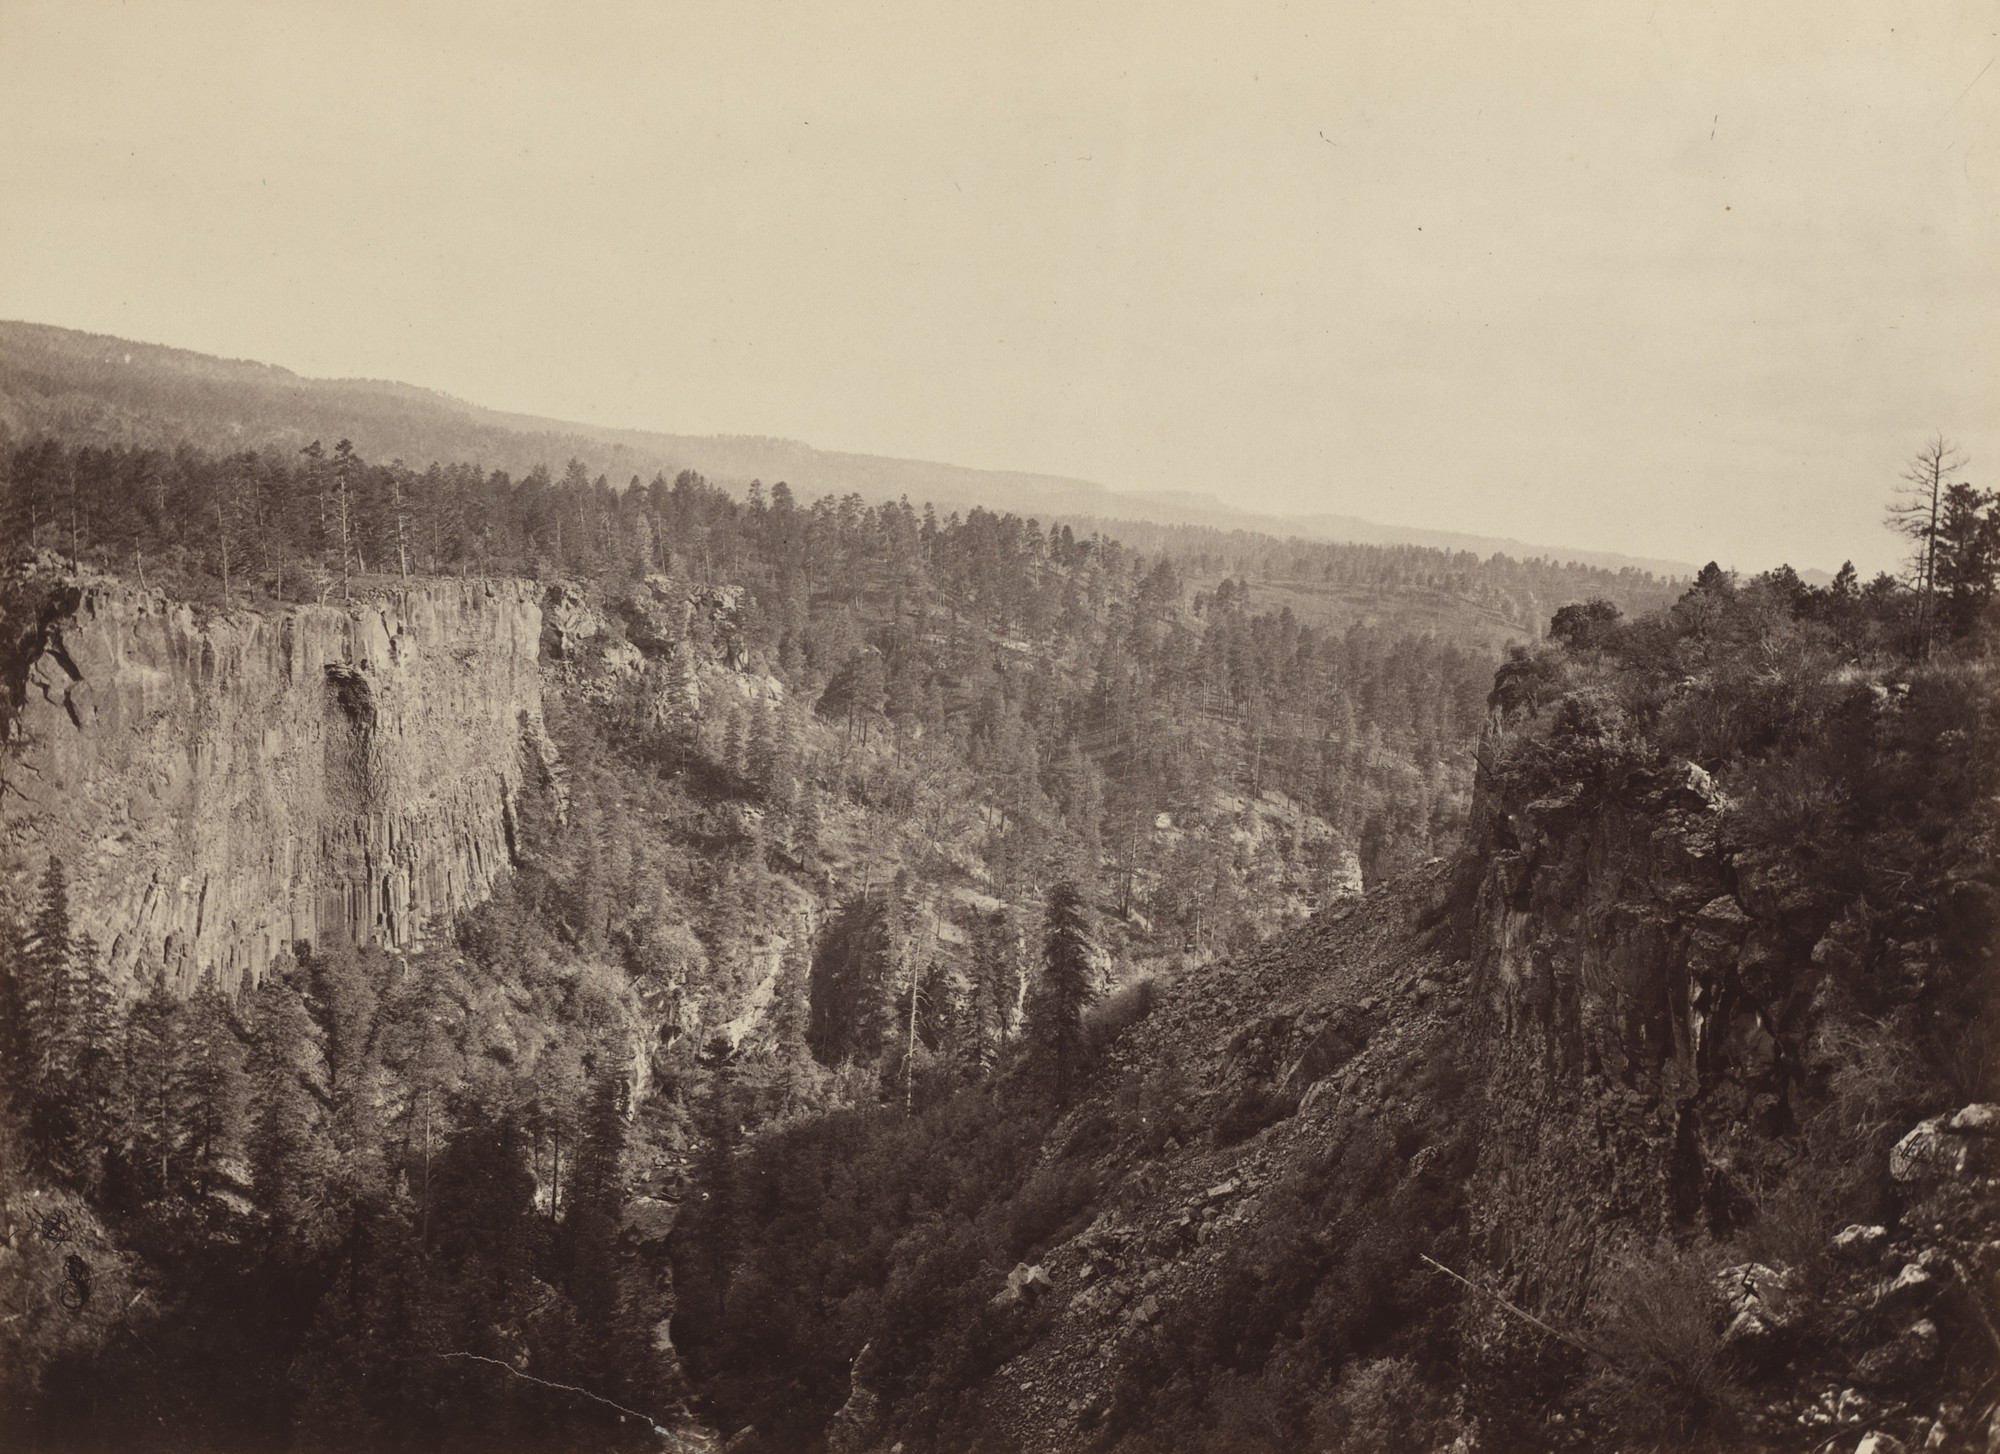 Timothy O'Sullivan. North Fork Canyon, Sierra Blanca Creek, Arizona. Seasons of 1871, 1872 and 1873